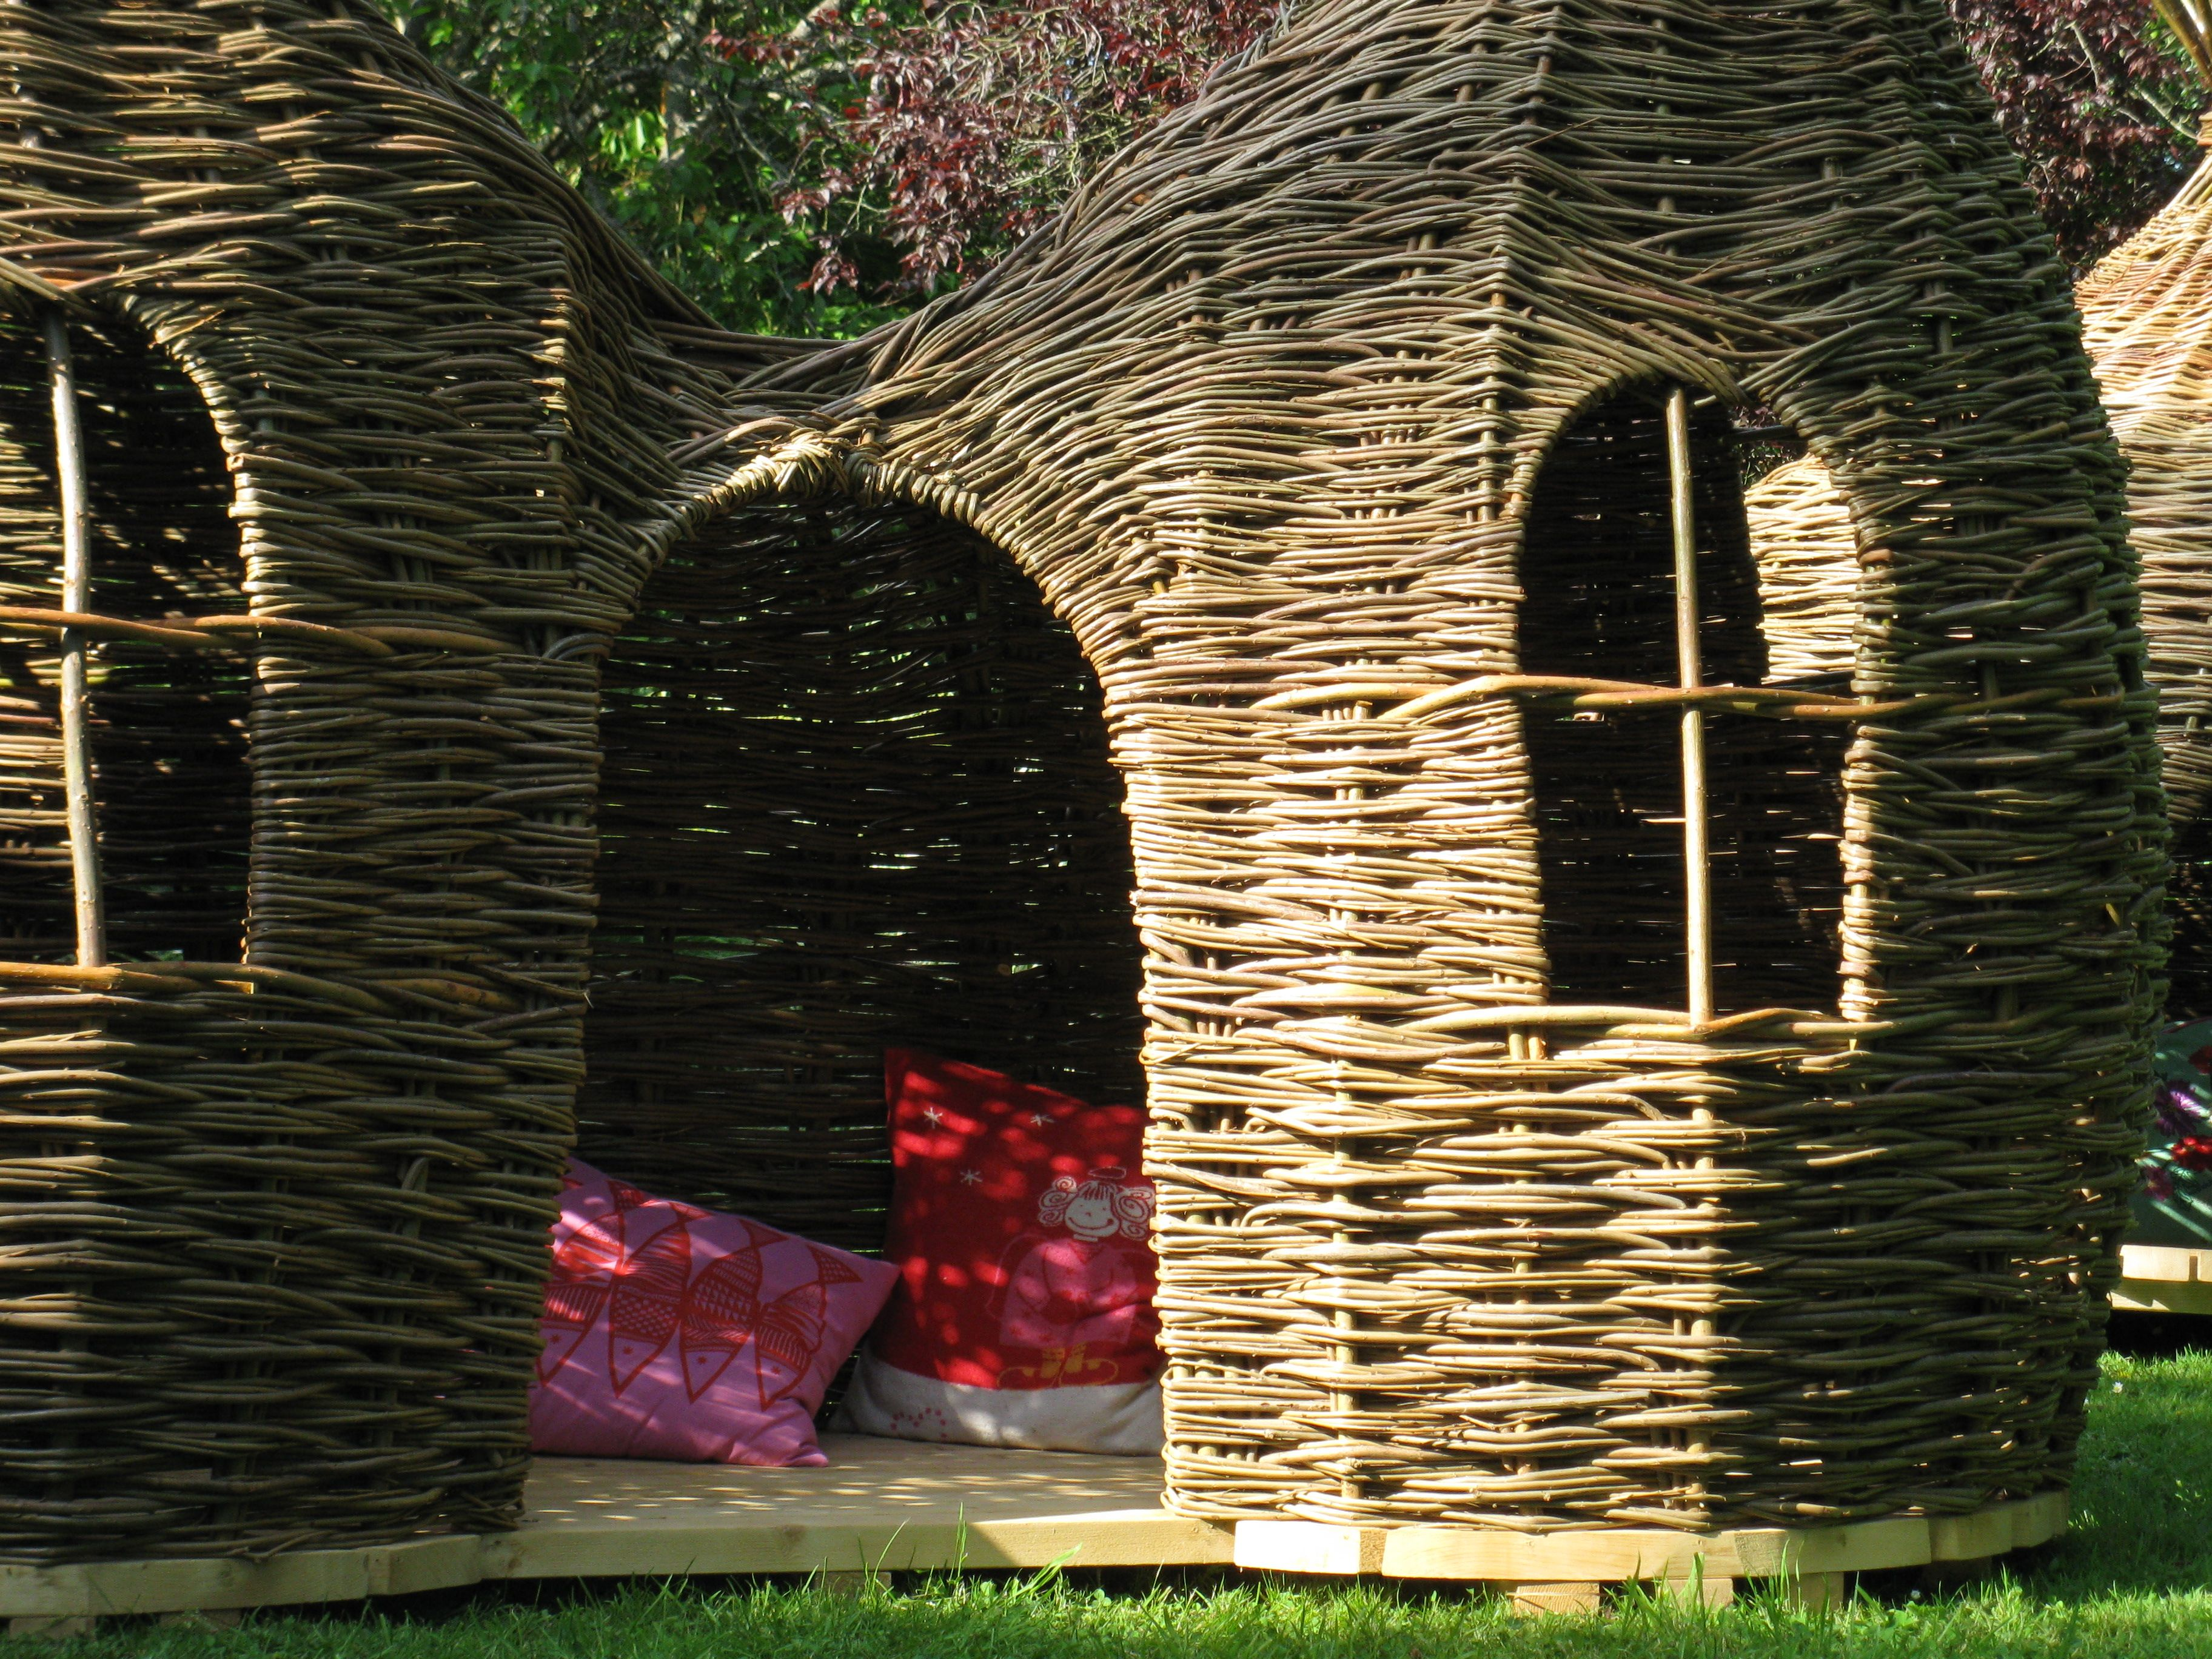 Dreaming spires playhouse with images willow weaving